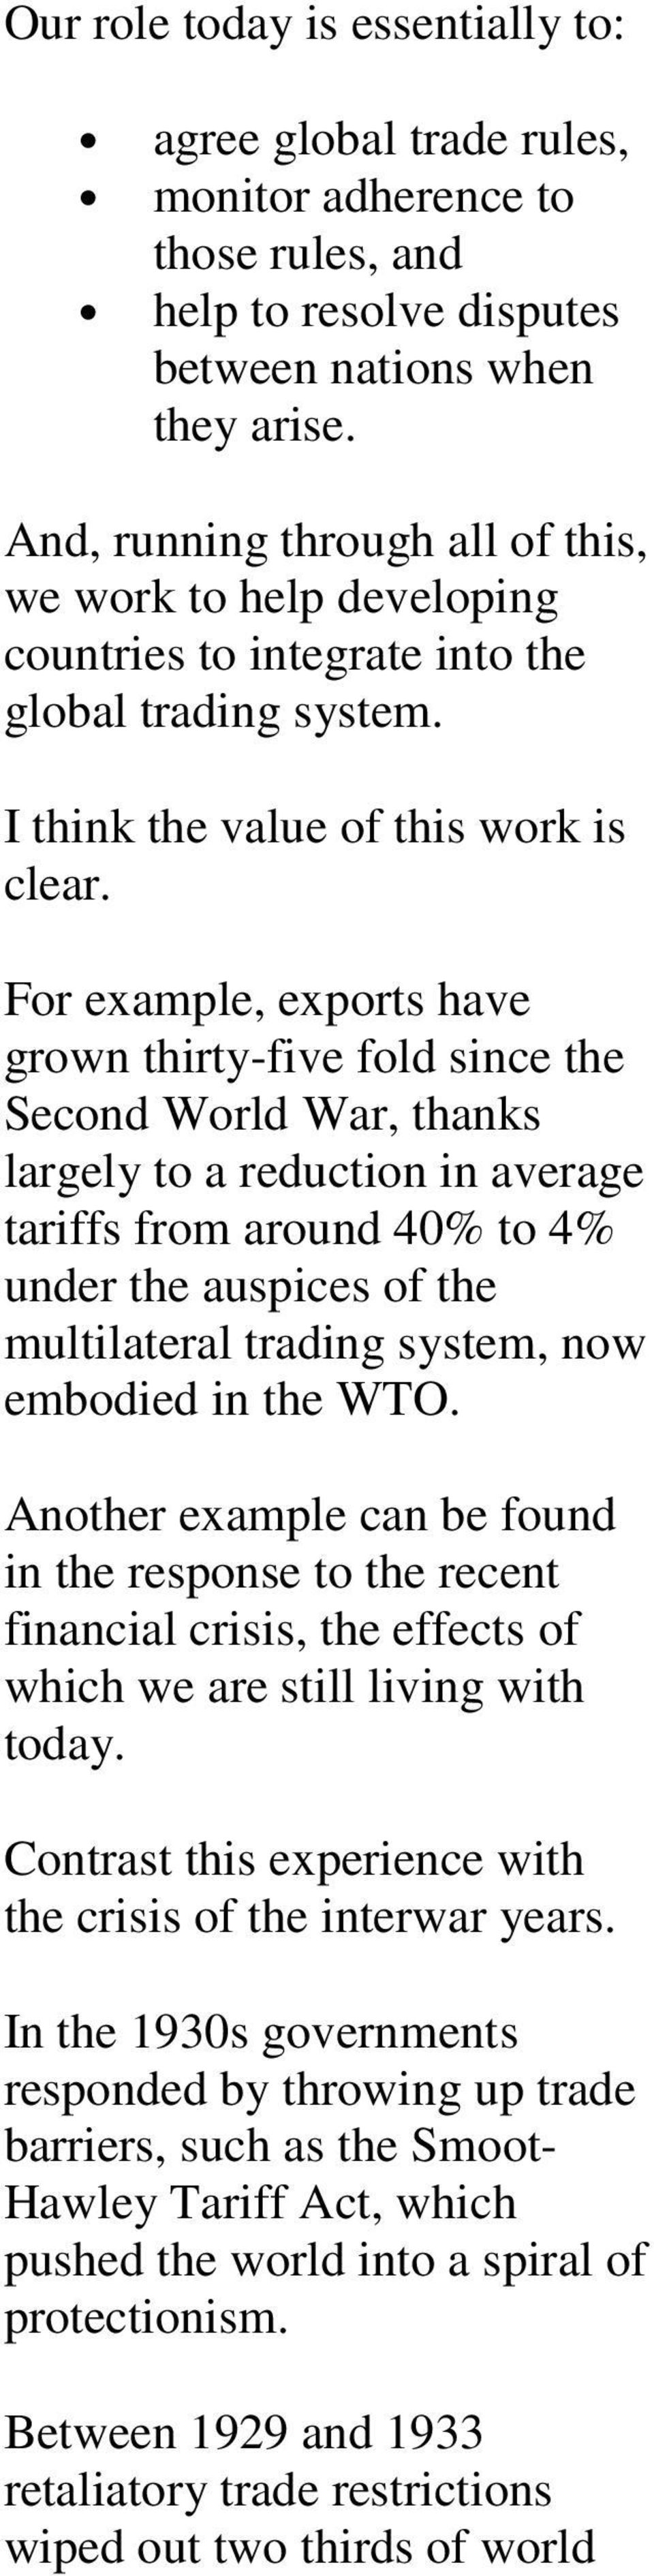 For example, exports have grown thirty-five fold since the Second World War, thanks largely to a reduction in average tariffs from around 40% to 4% under the auspices of the multilateral trading